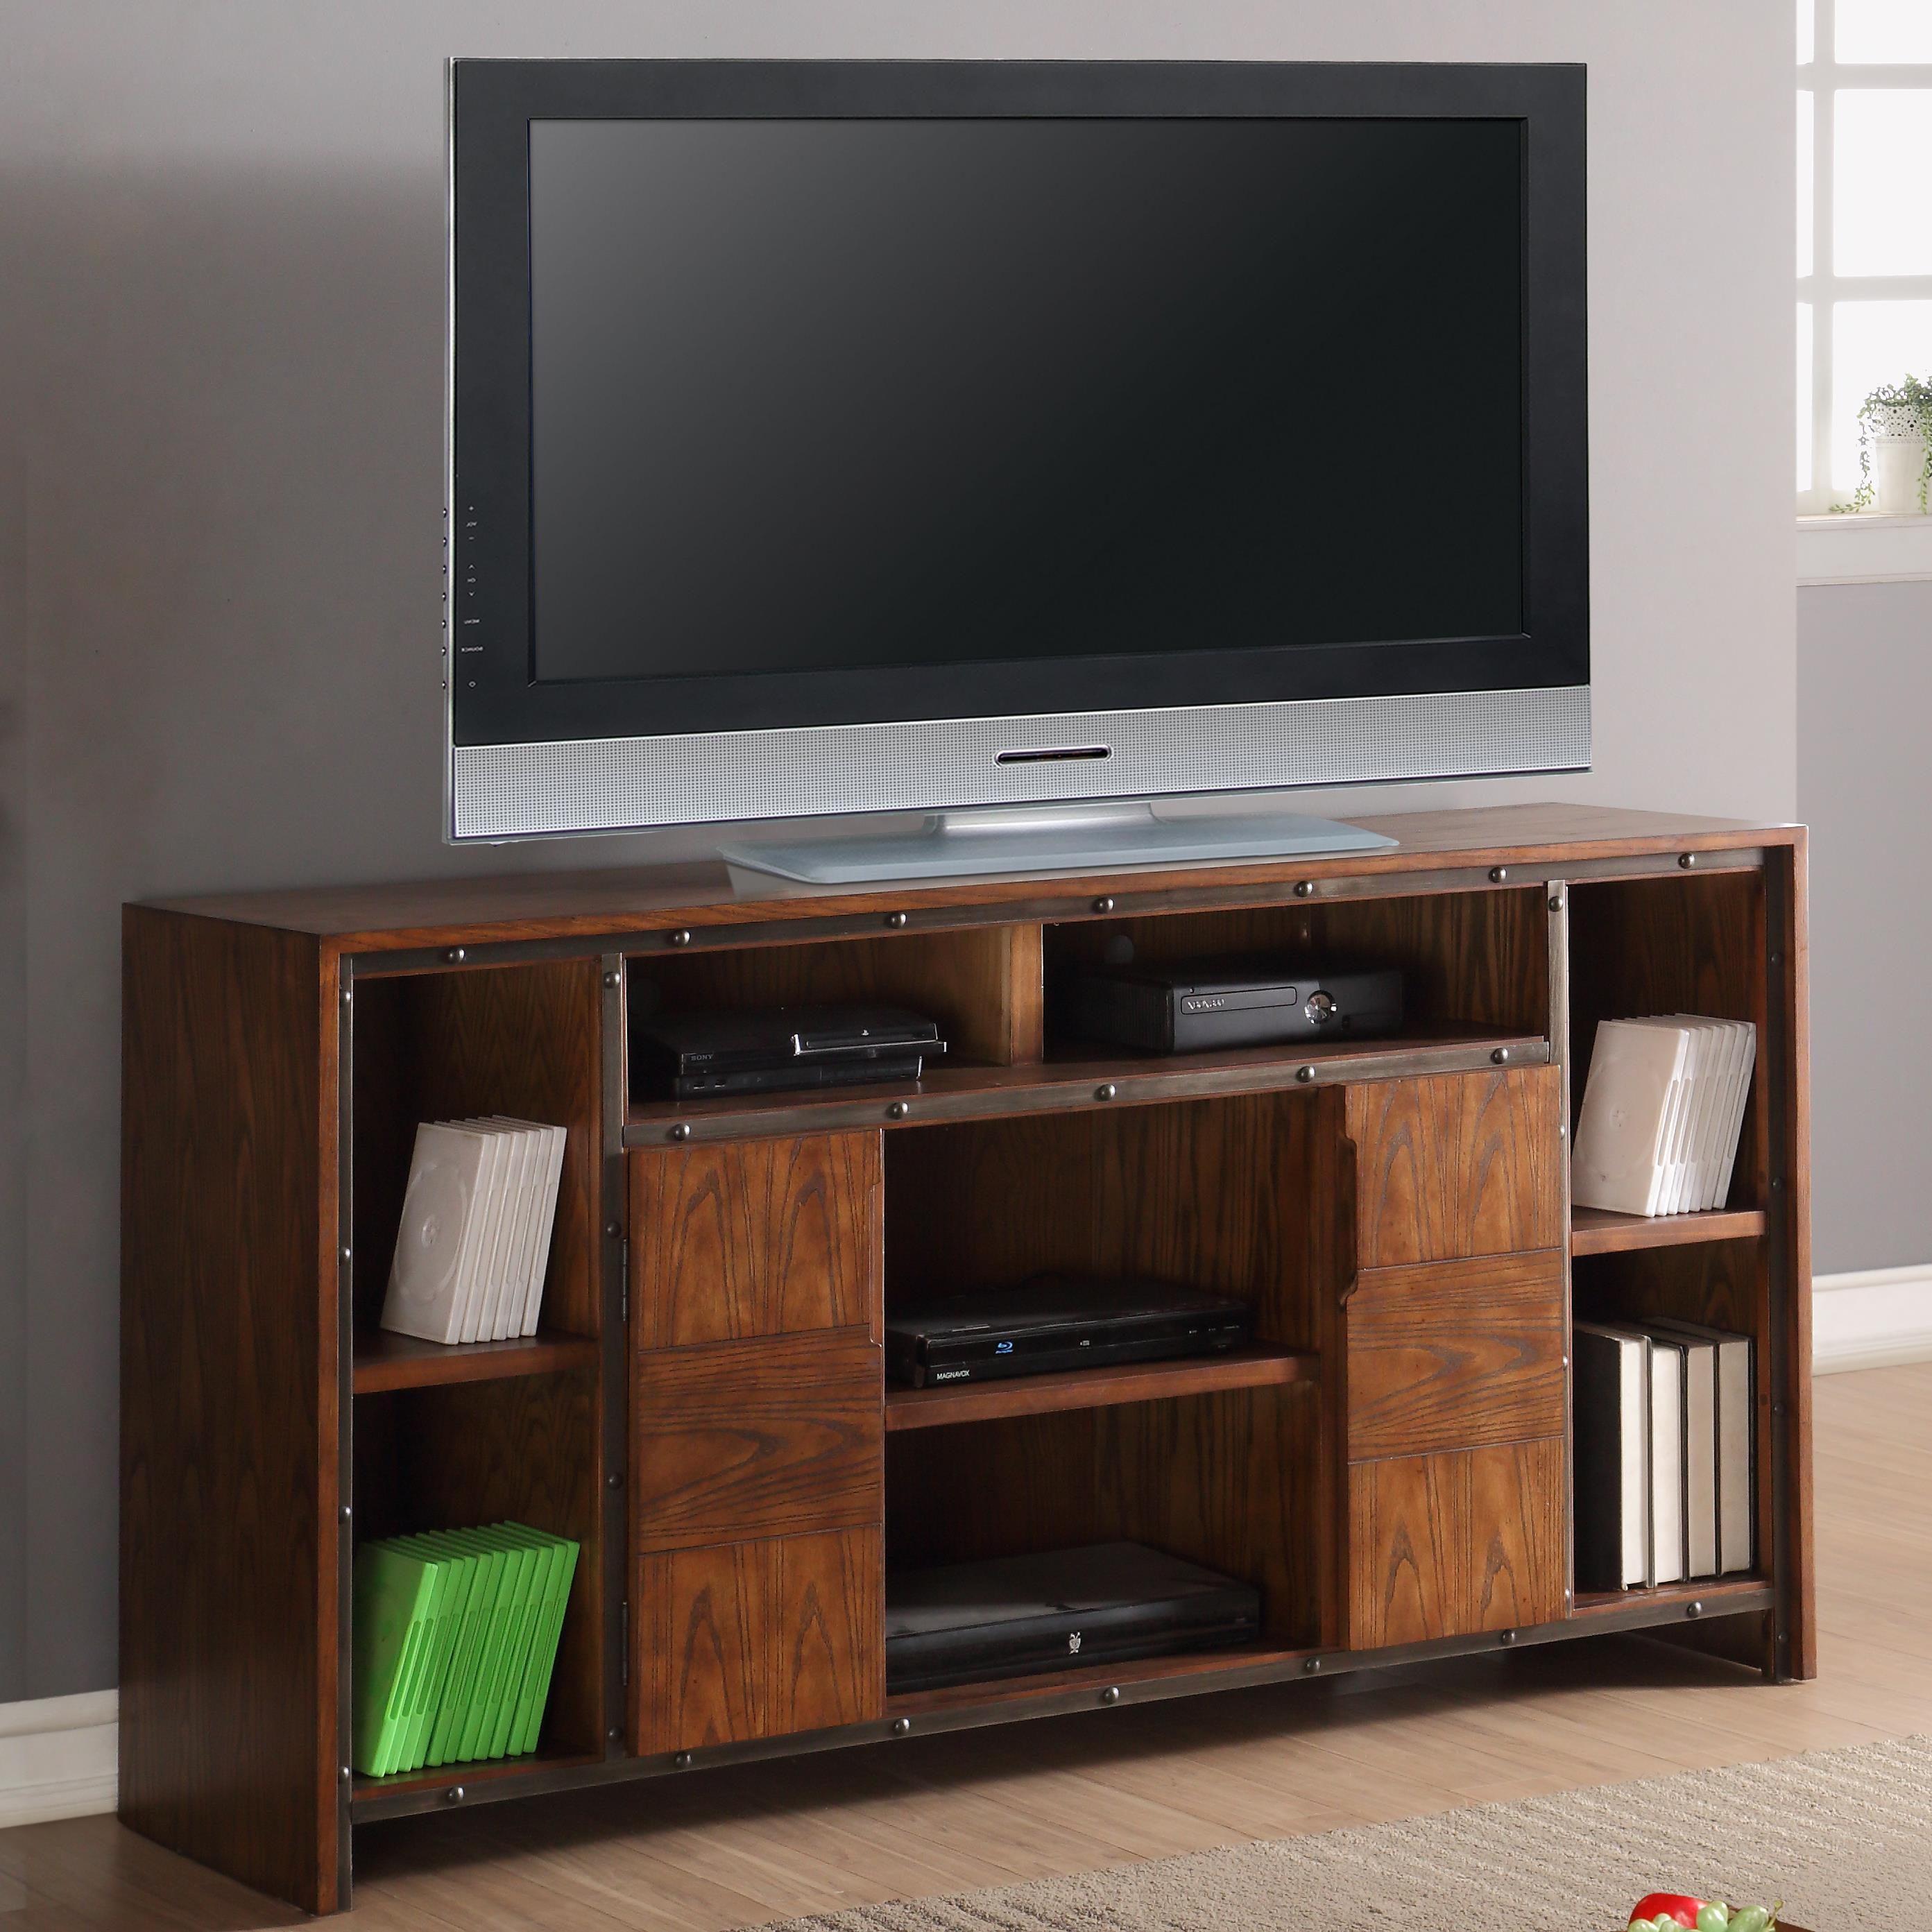 "Legends Furniture Crossgrain Collection 64"" TV Console - Item Number: ZCGN-1464"